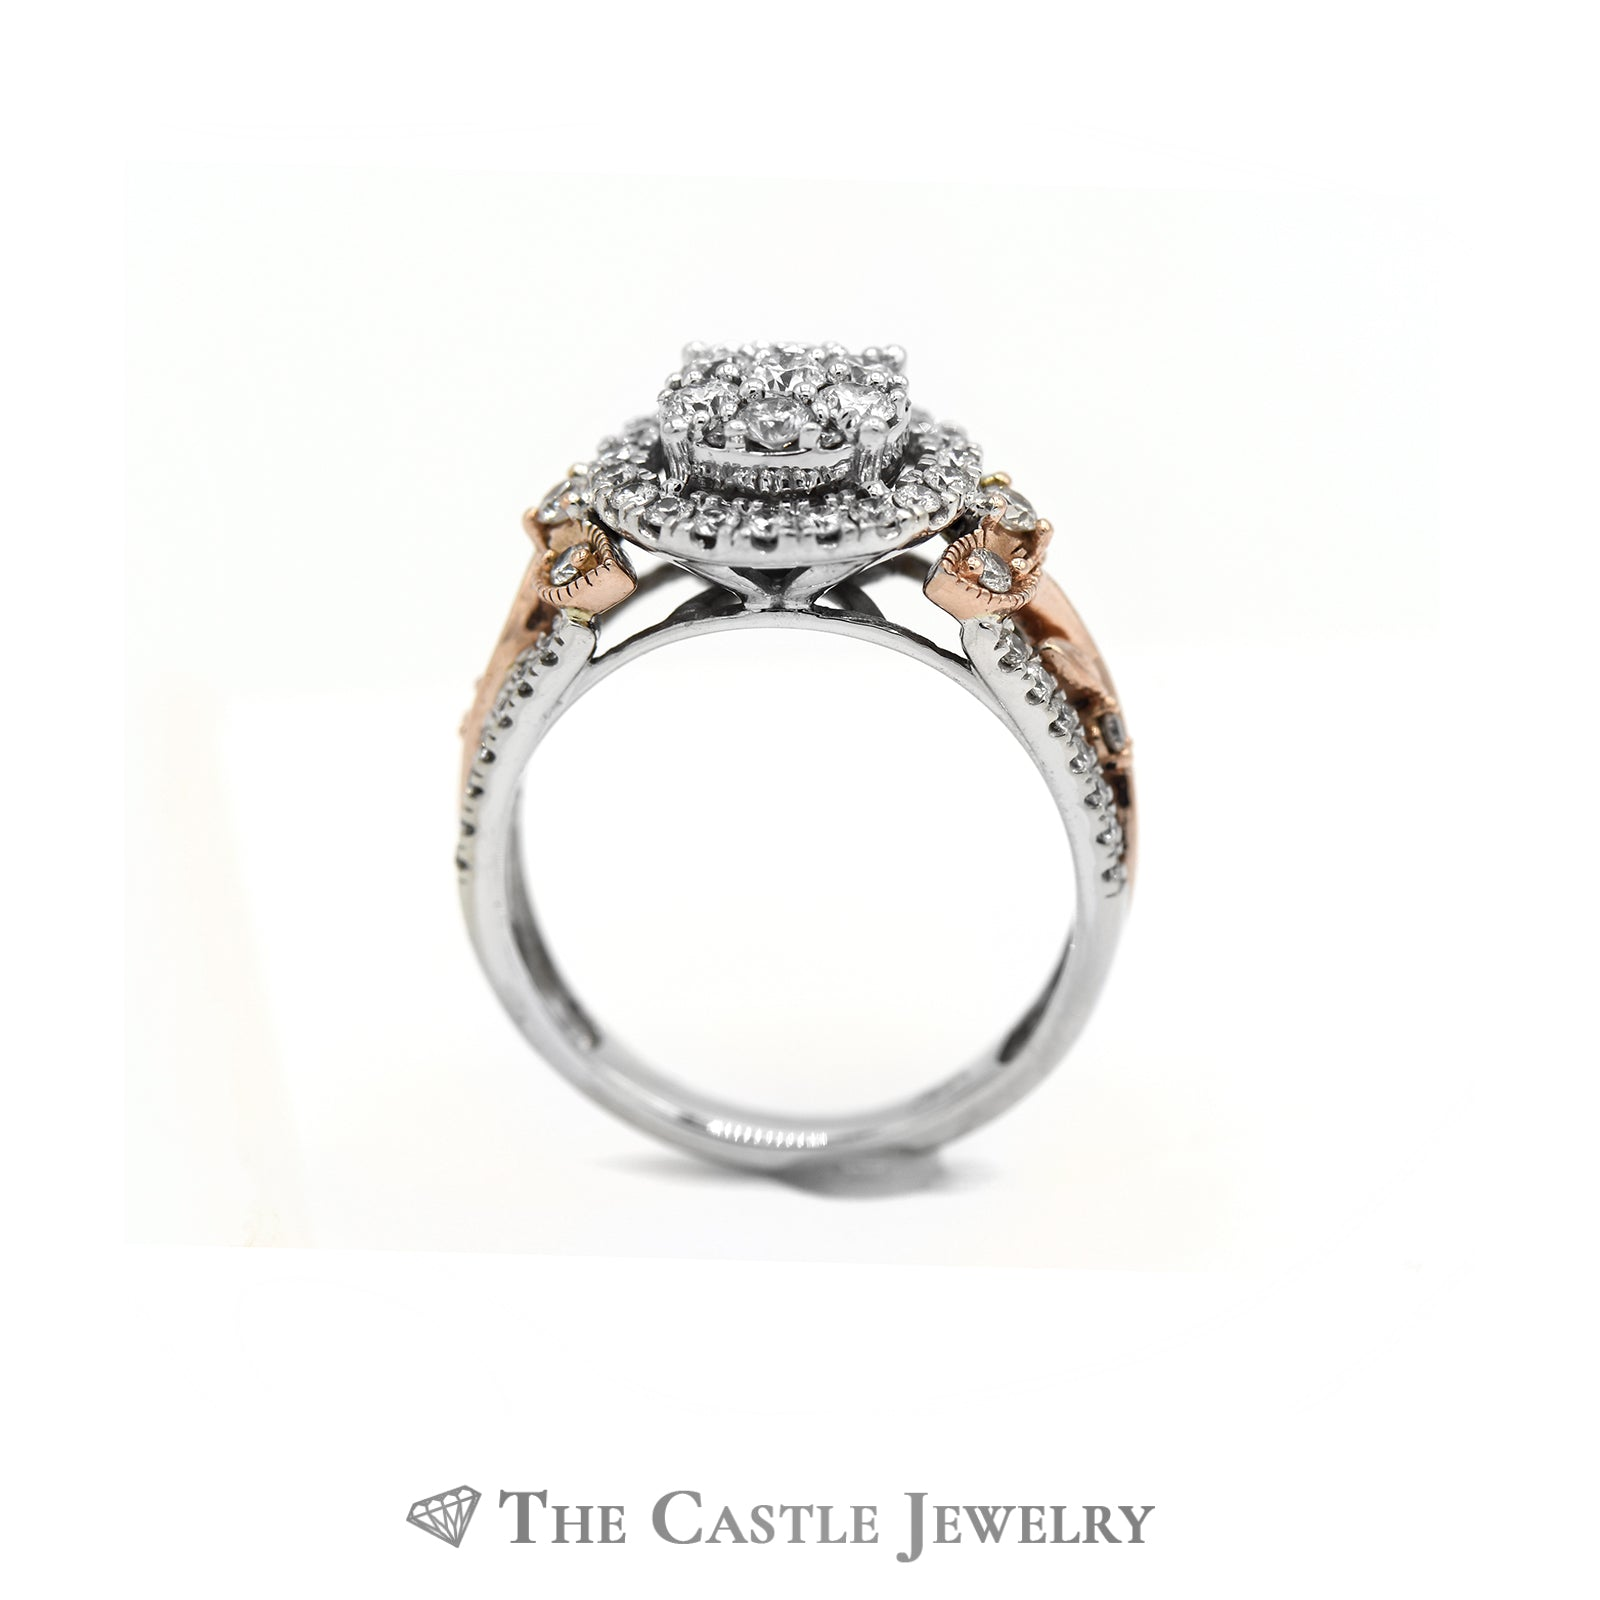 Round Diamond Cluster Engagement Ring in Floral Designed 10k Two Tone Gold Setting-1